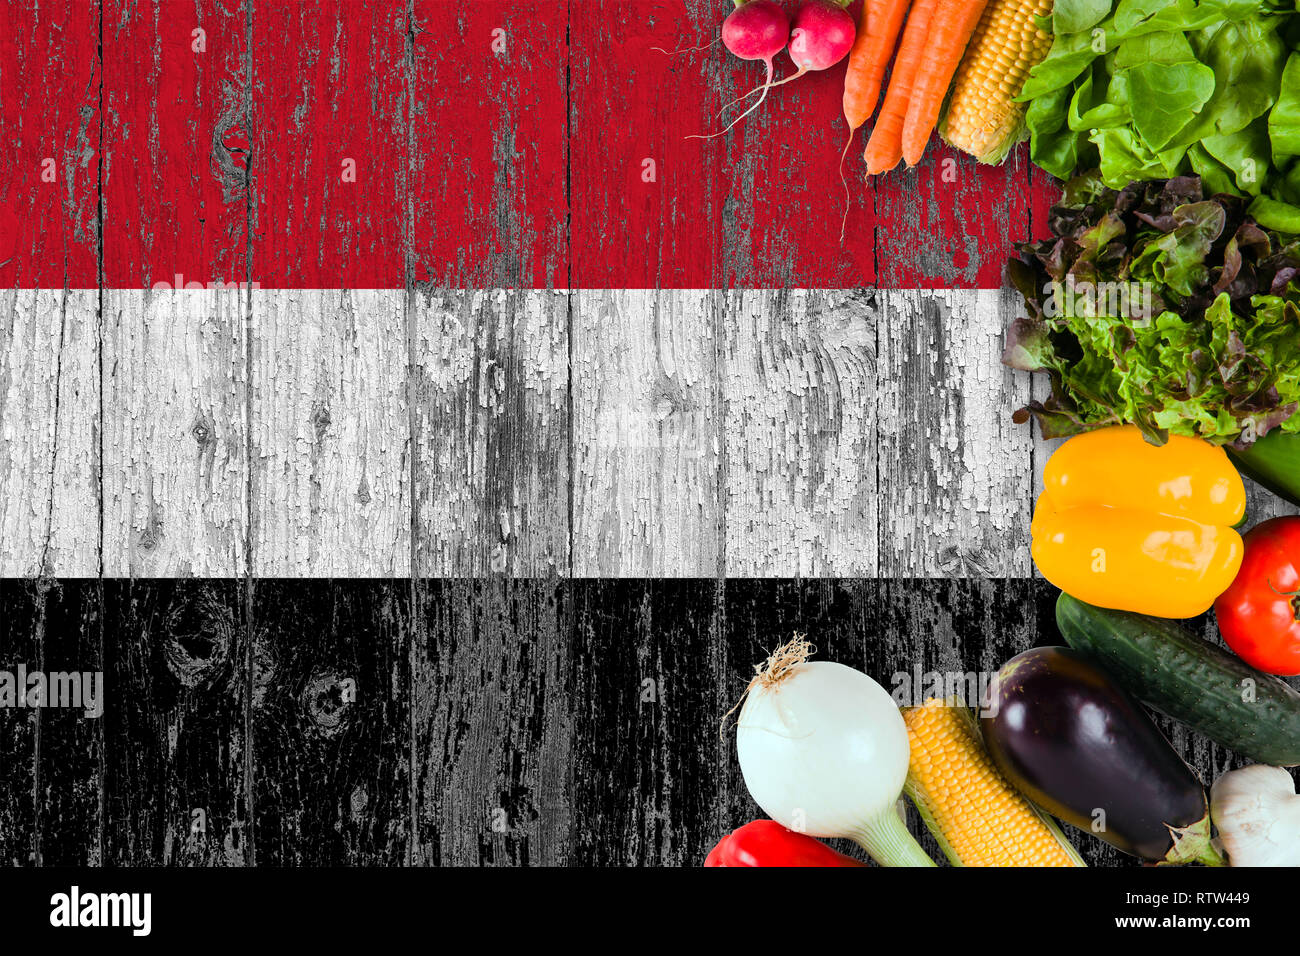 Fresh vegetables from Yemen on table. Cooking concept on wooden flag background. - Stock Image